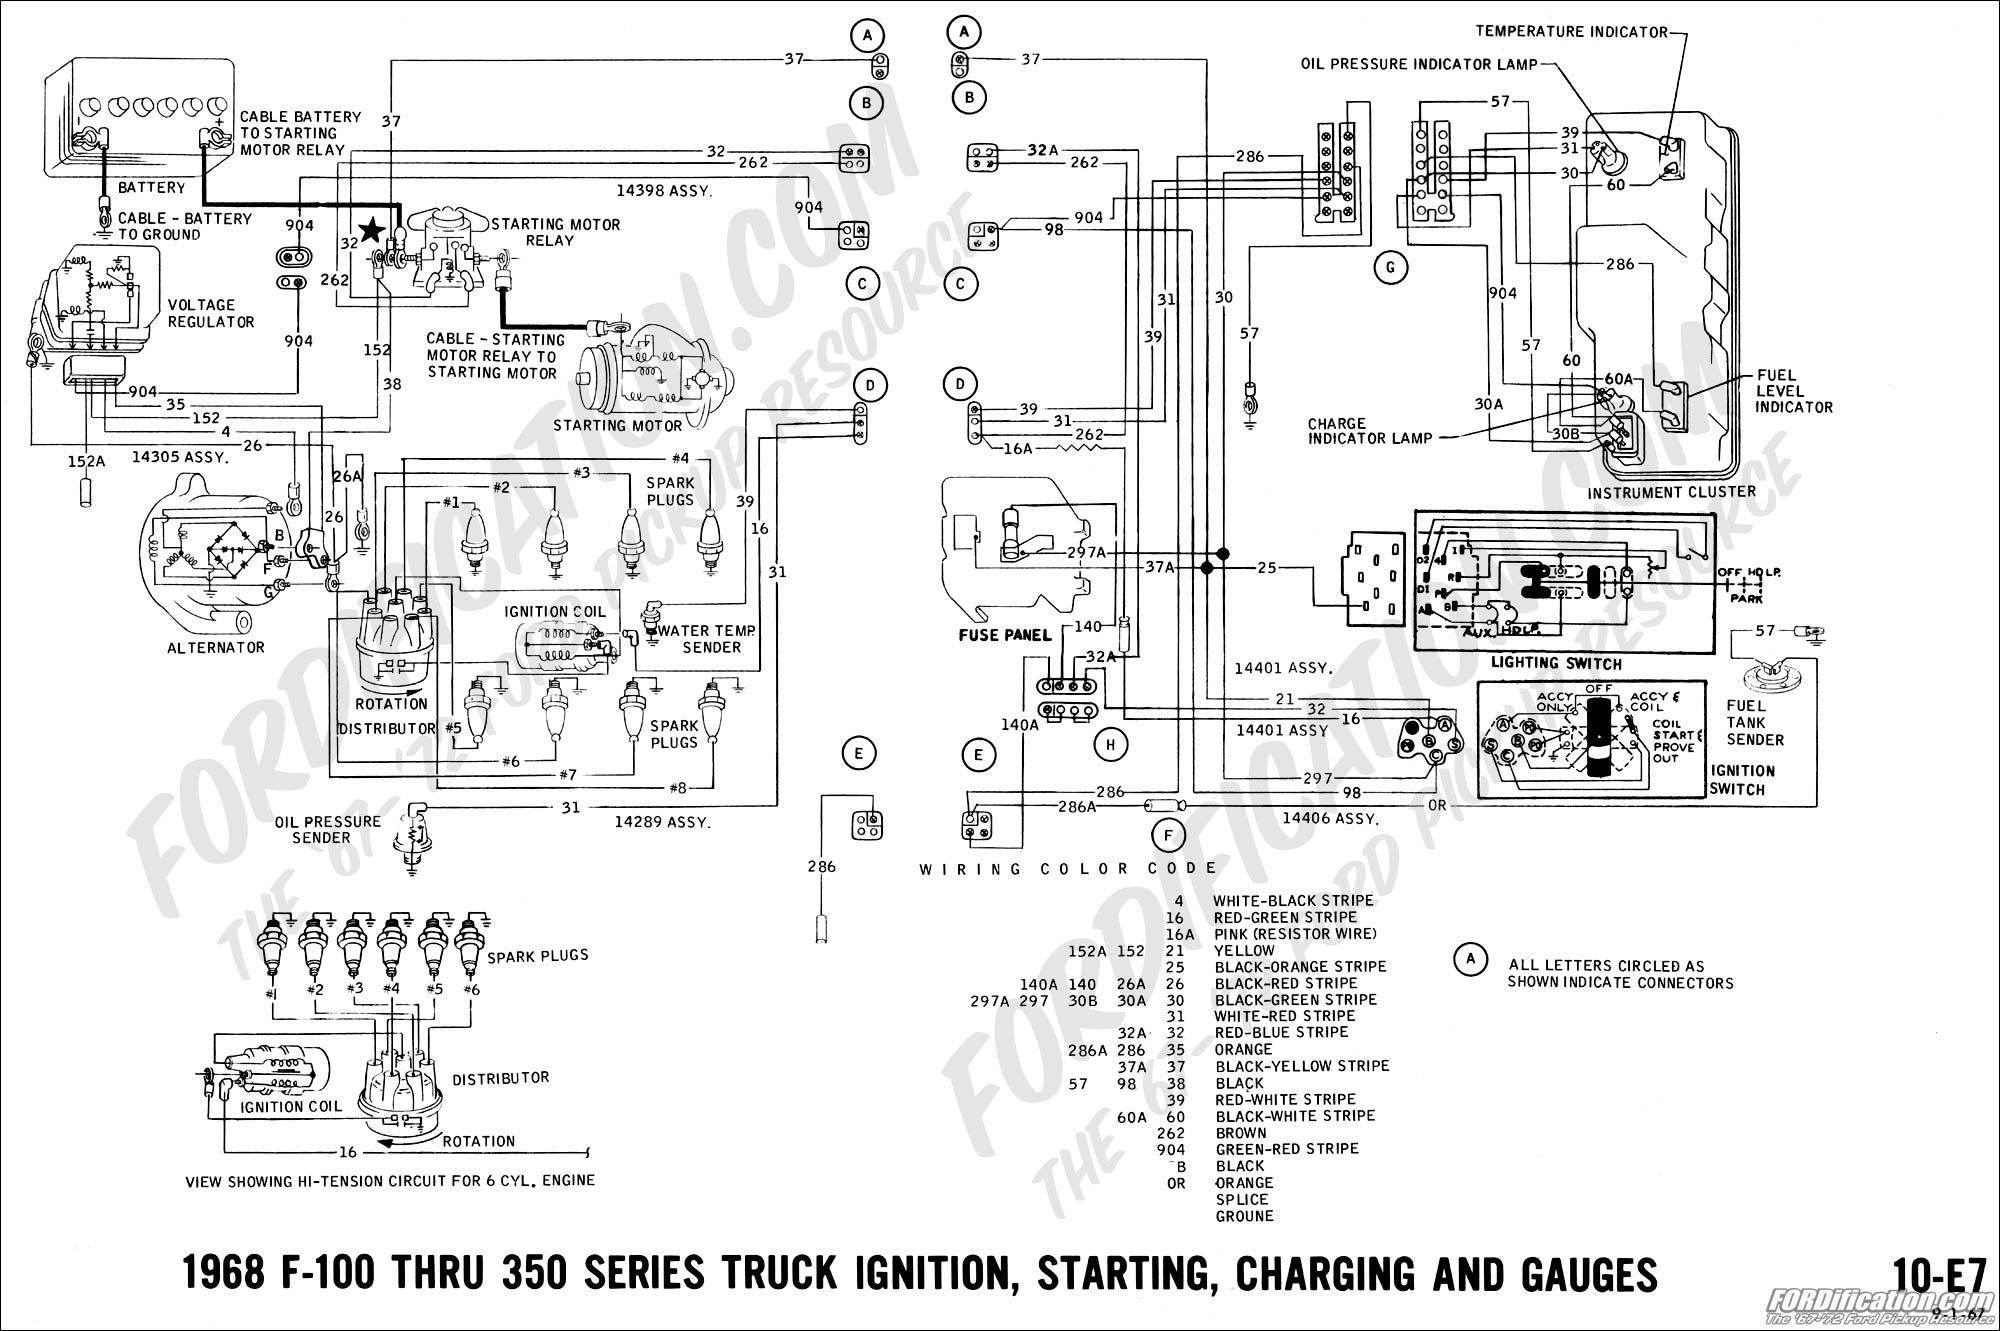 68 09 ford truck technical drawings and schematics section h wiring 1989 F250 Wiring Diagram at bayanpartner.co